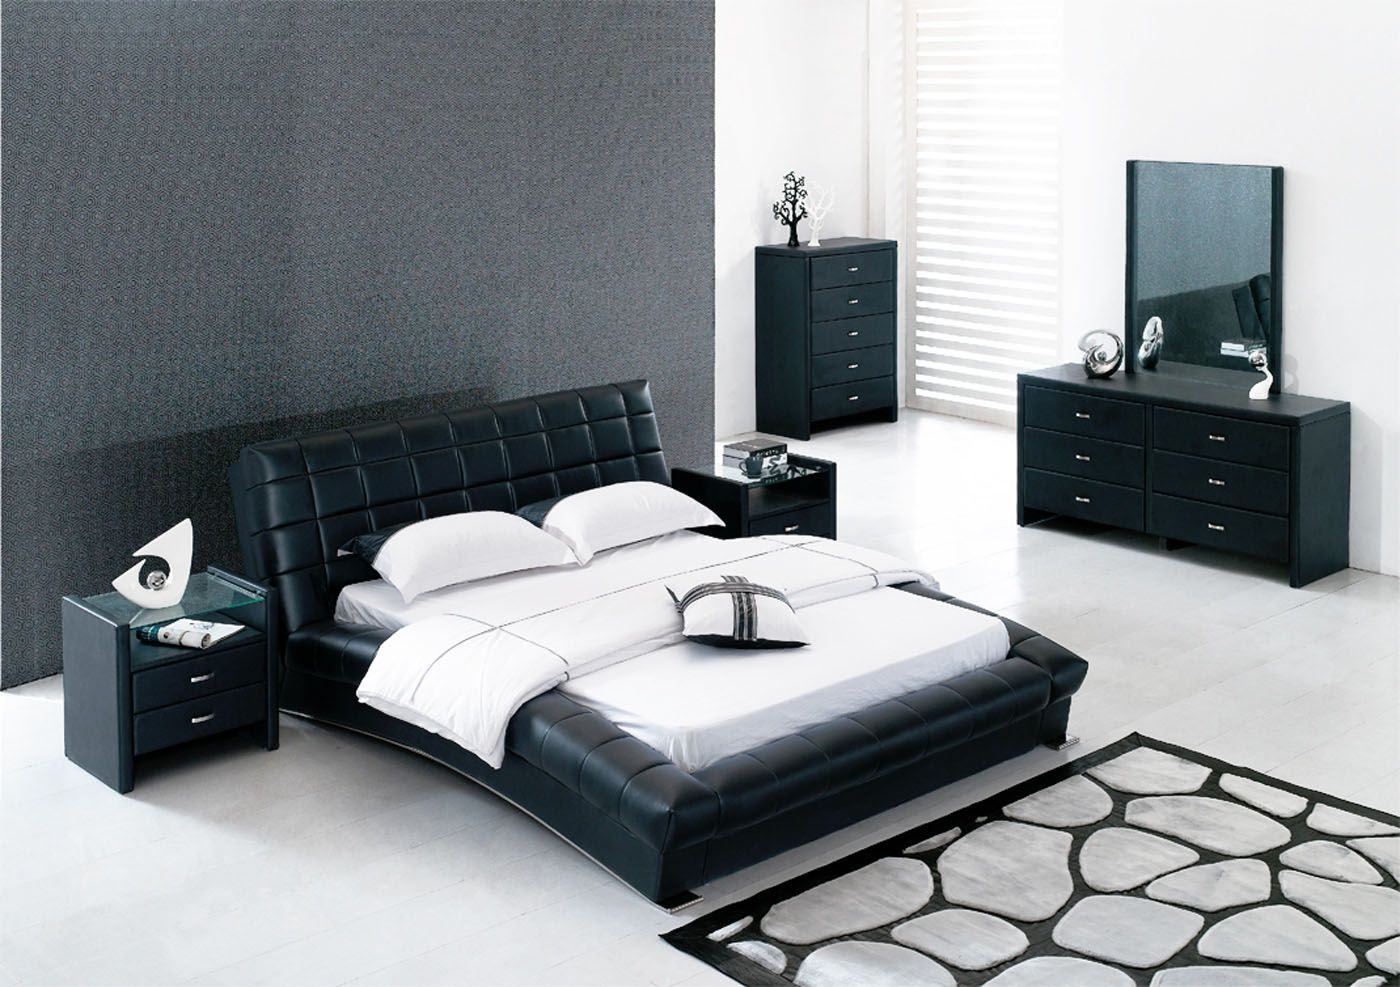 Bedroom furniture for men - Black Leather Bedroom Furniture For Contemporary Bedroom Sets With Painted Wall And White Ceramic Bedroom Floor